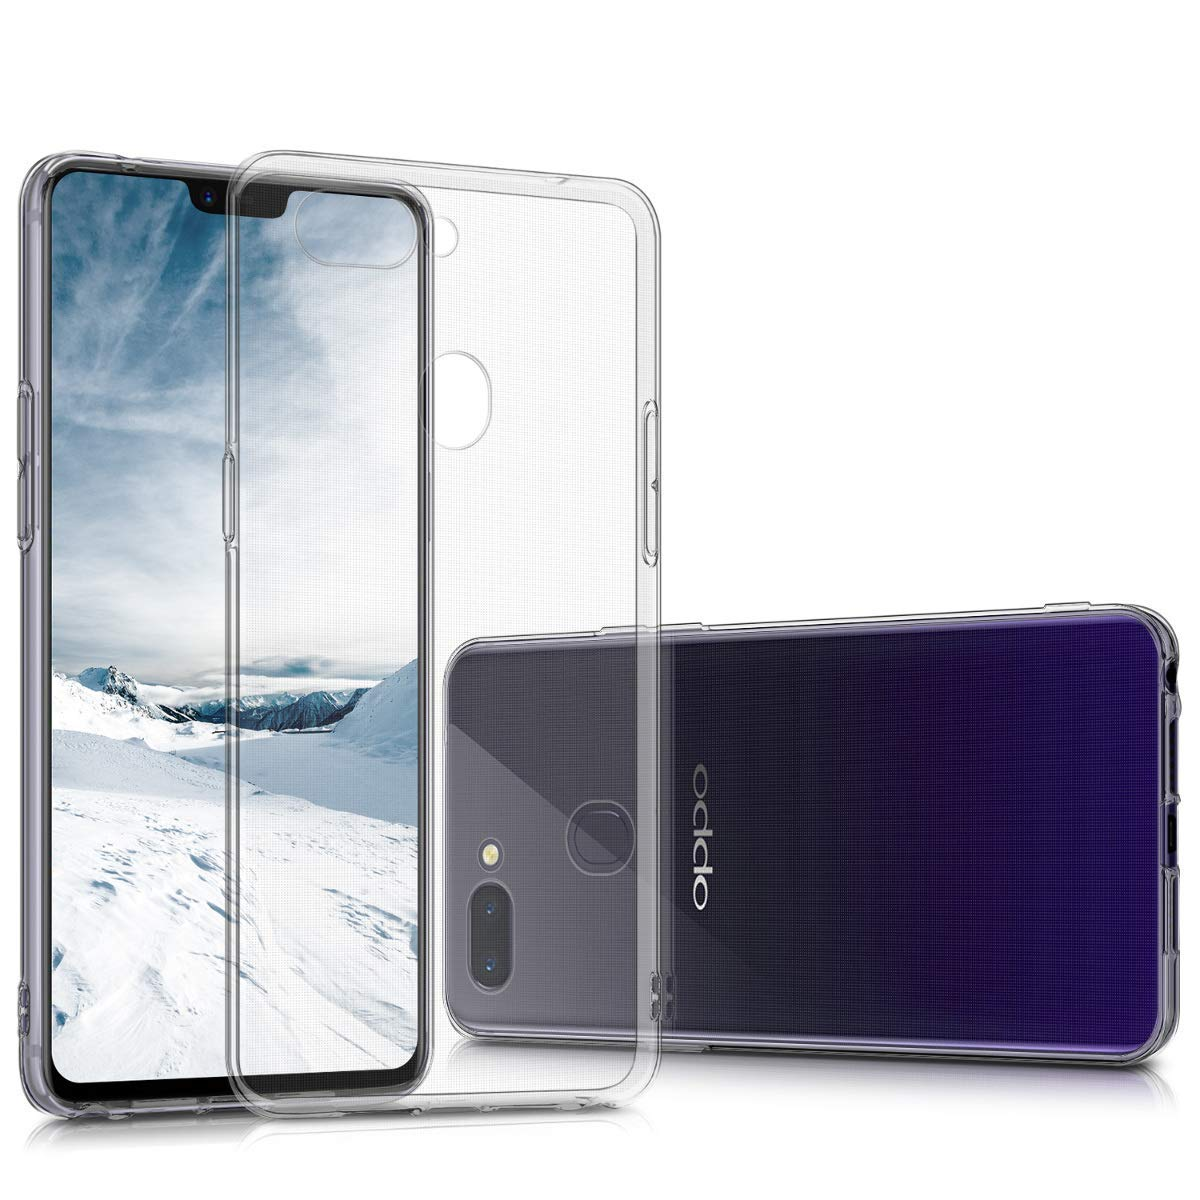 For <font><b>OPPO</b></font> A33 <font><b>A37</b></font> A39 A57 A59 A53 A3 A77 A71 A79 A73 A5 A7 A73s Ultra Thin Clear Transparent <font><b>Soft</b></font> Silicone TPU <font><b>Case</b></font> Cover image